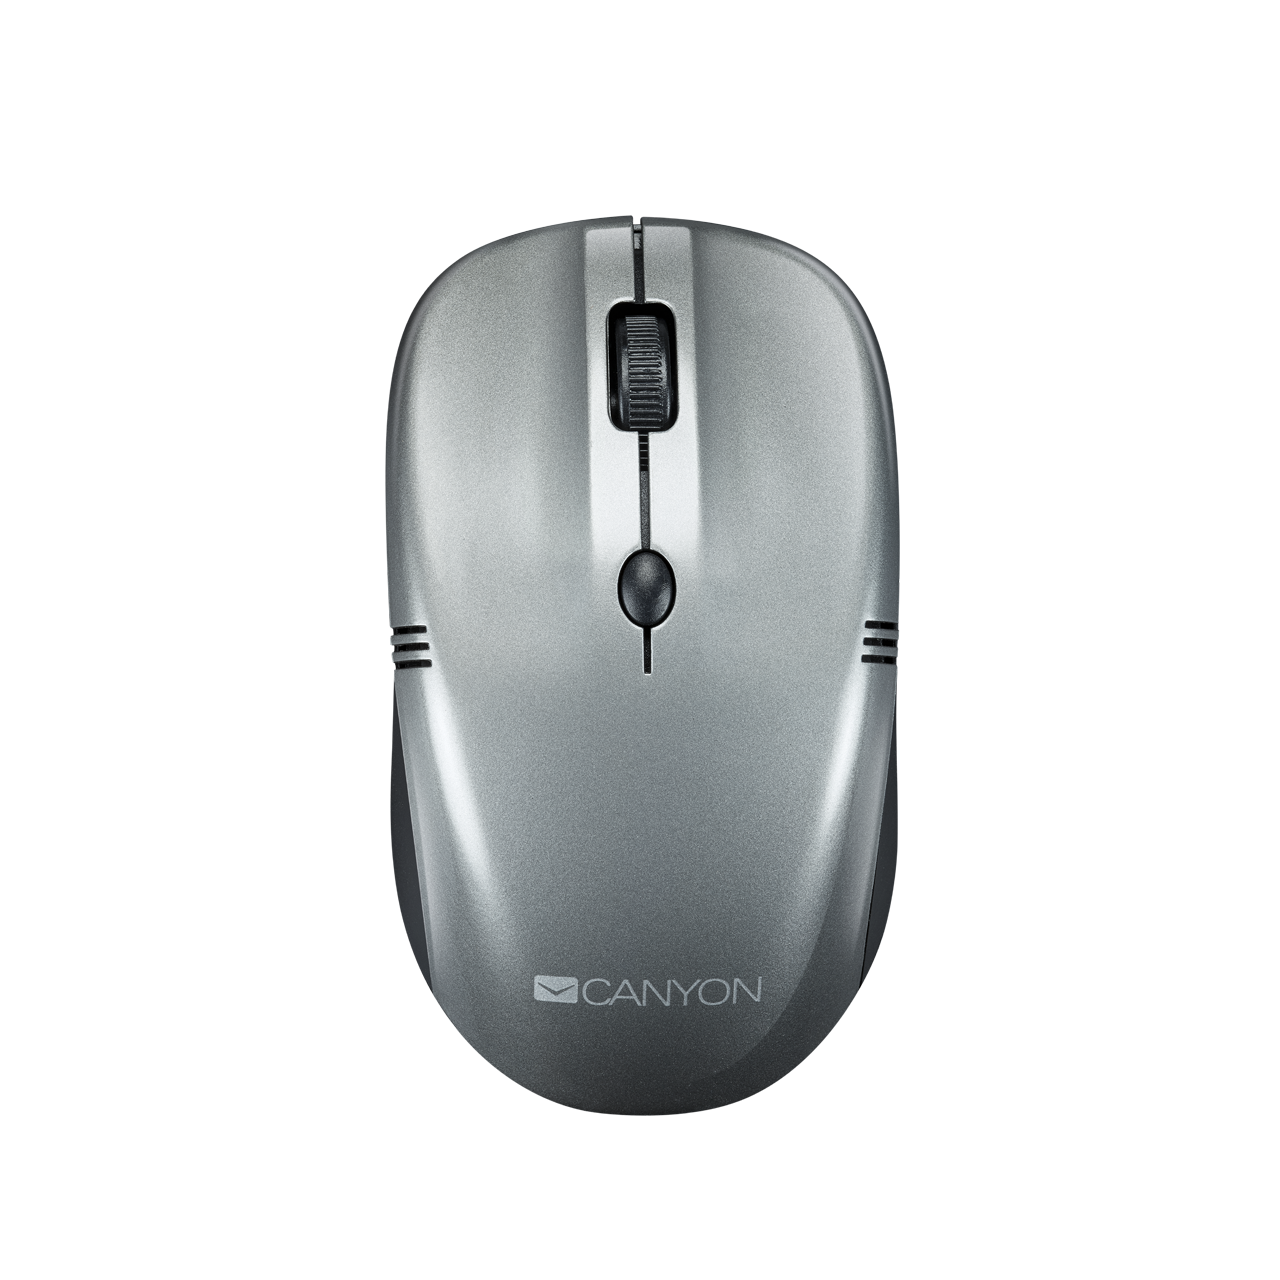 Mouse Wireless Canyon CNE-CMSW03DG Grey